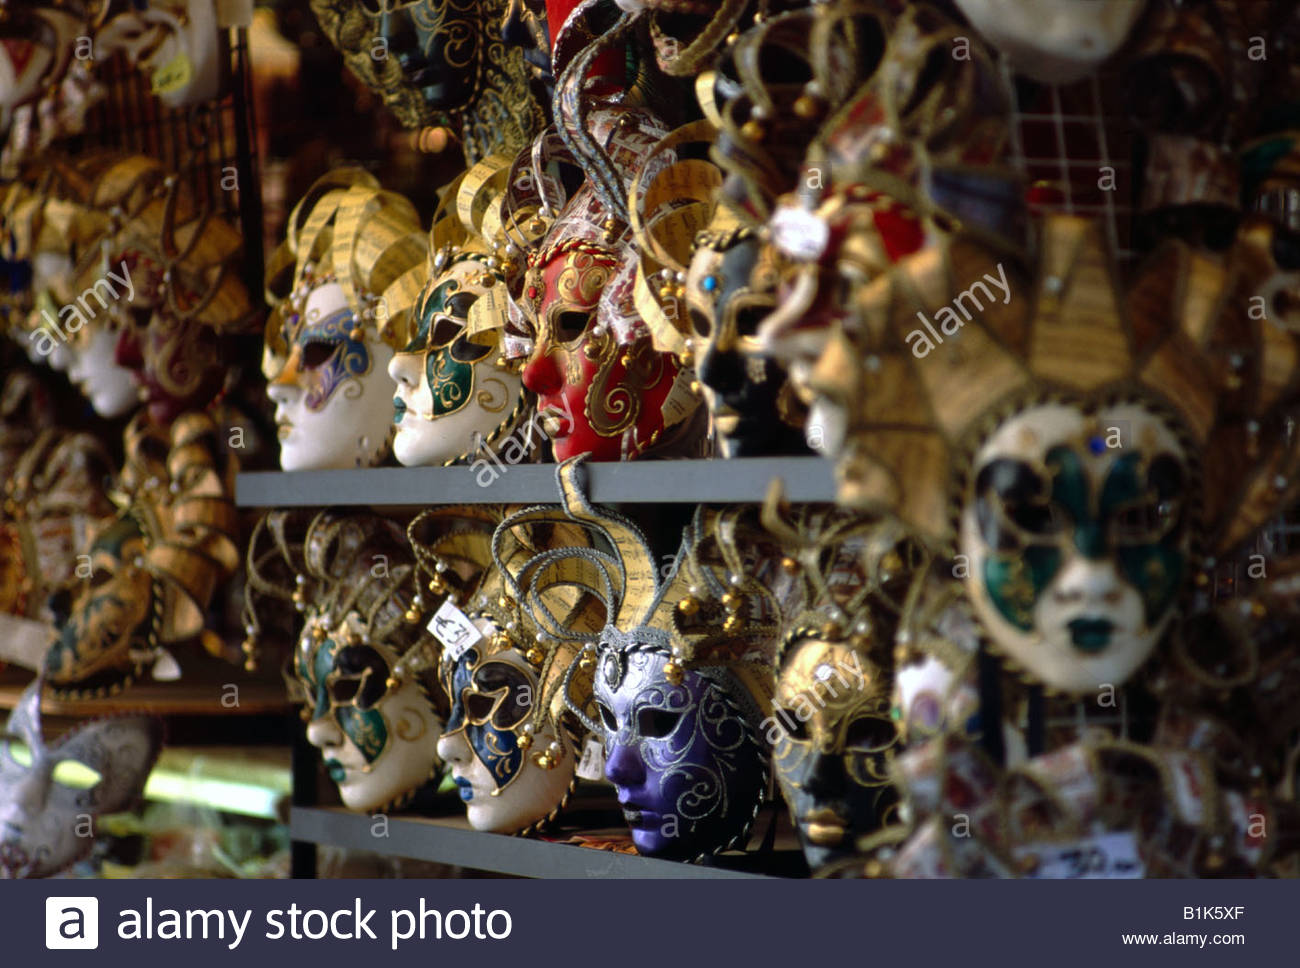 Venice Italy Ornate Venetian masks for sale on a stall - Stock Image